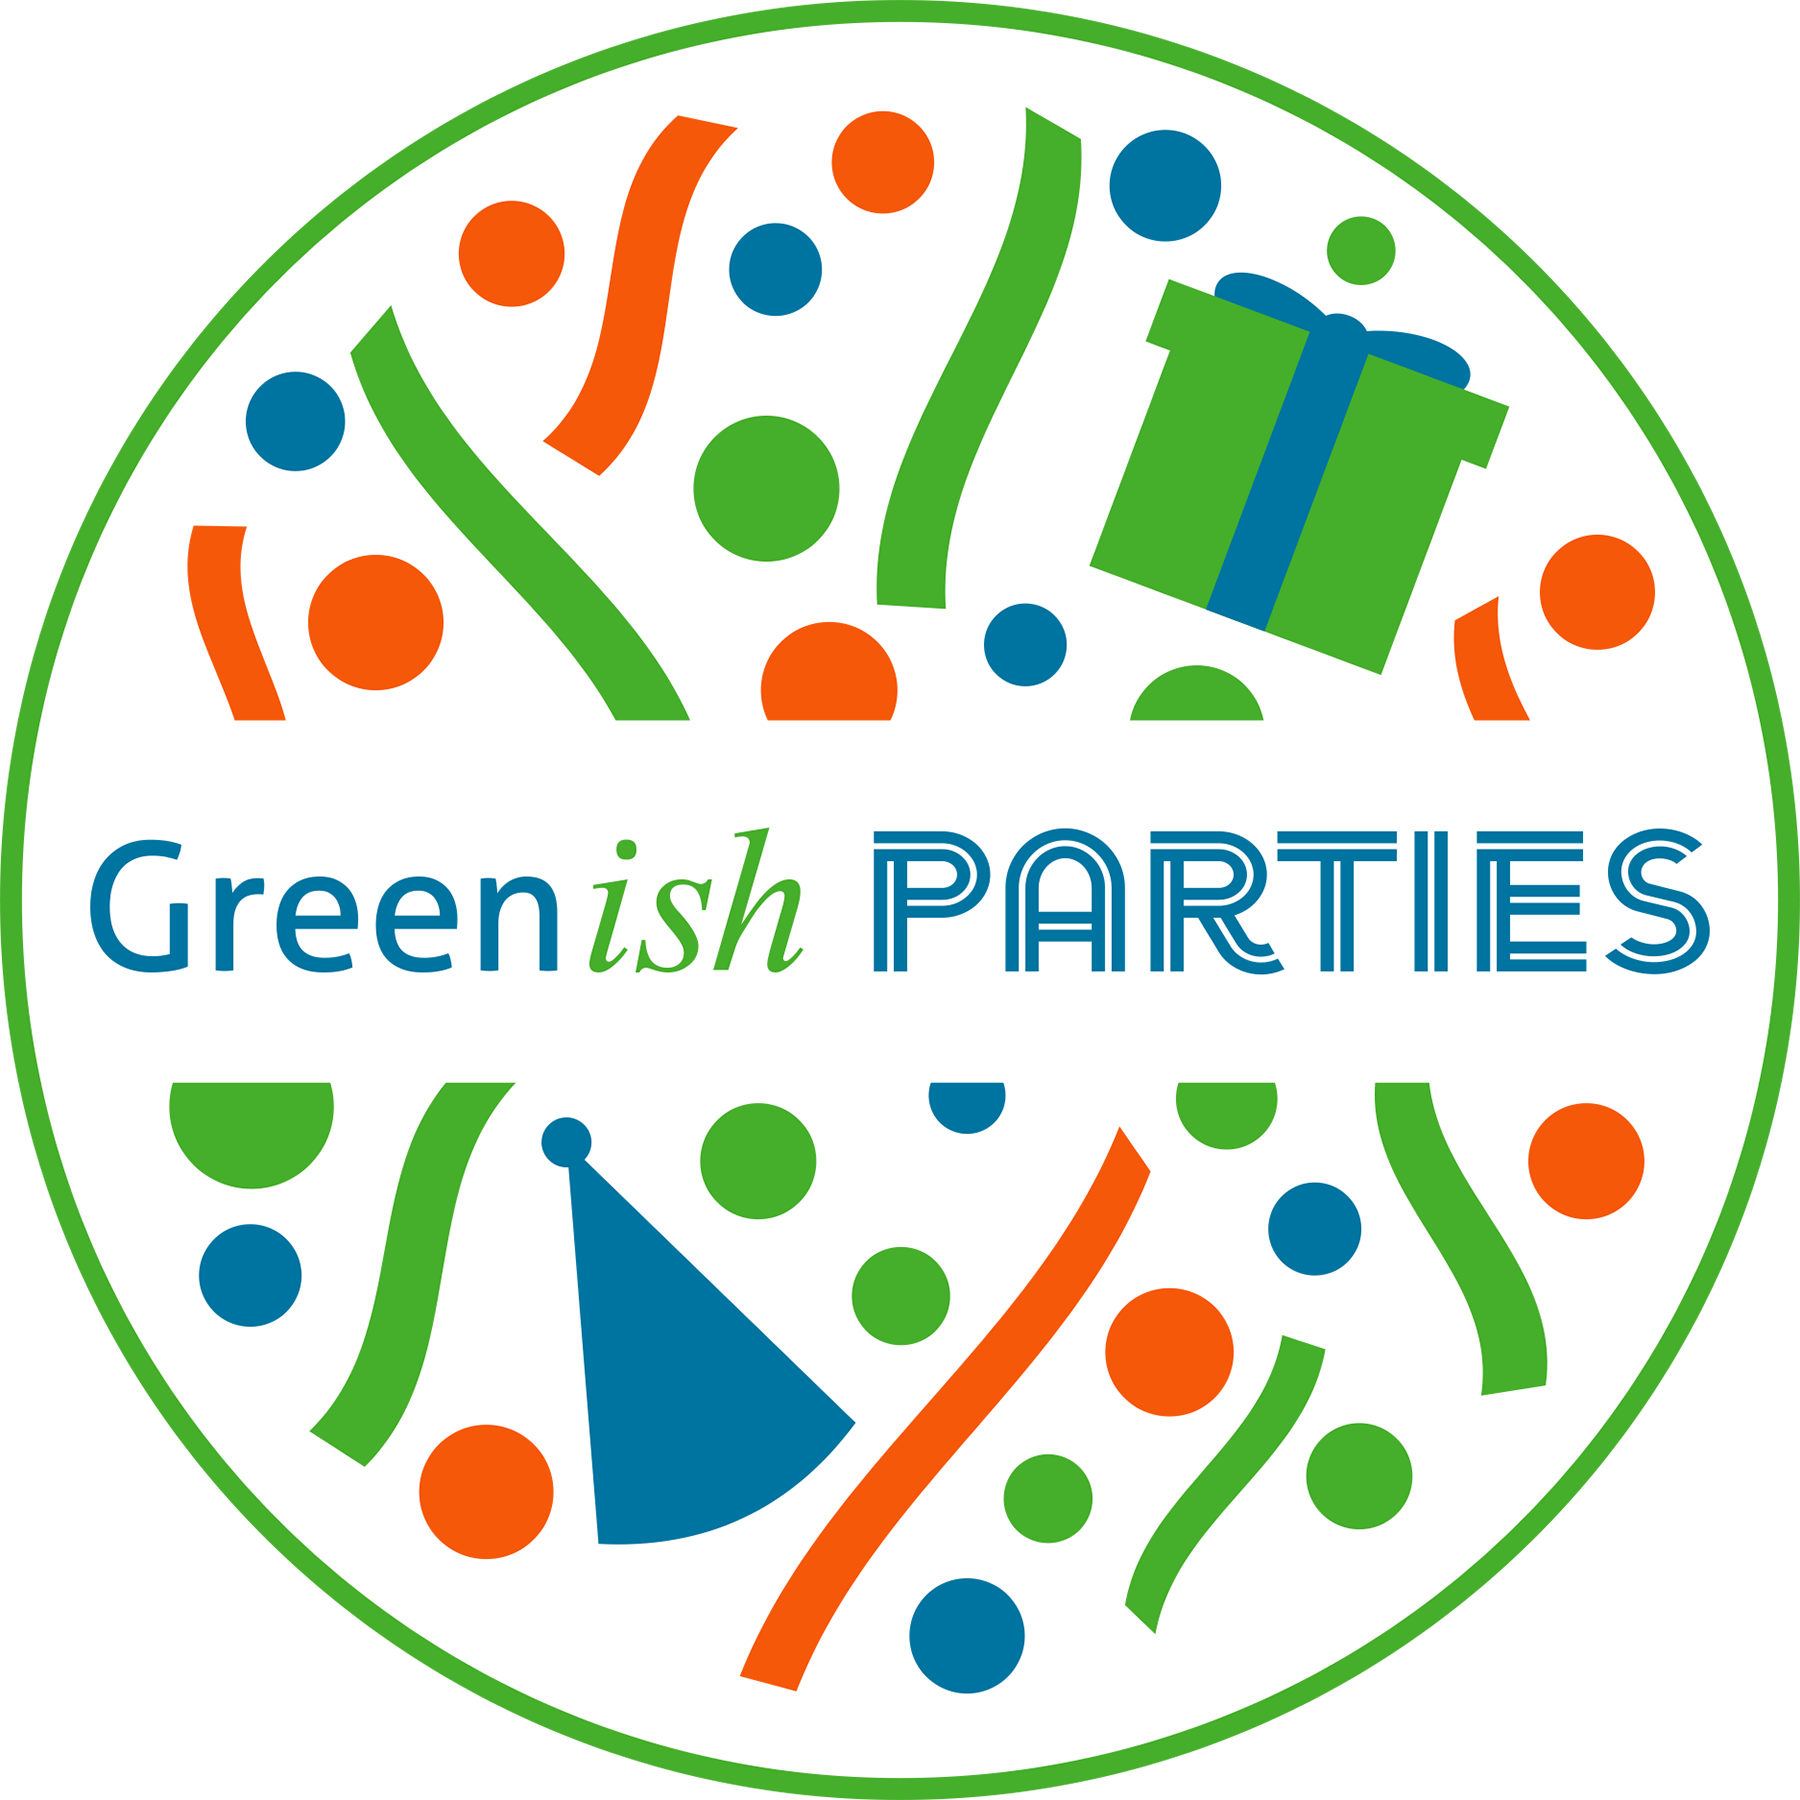 GreenishParties_1800x1800_PNG.png